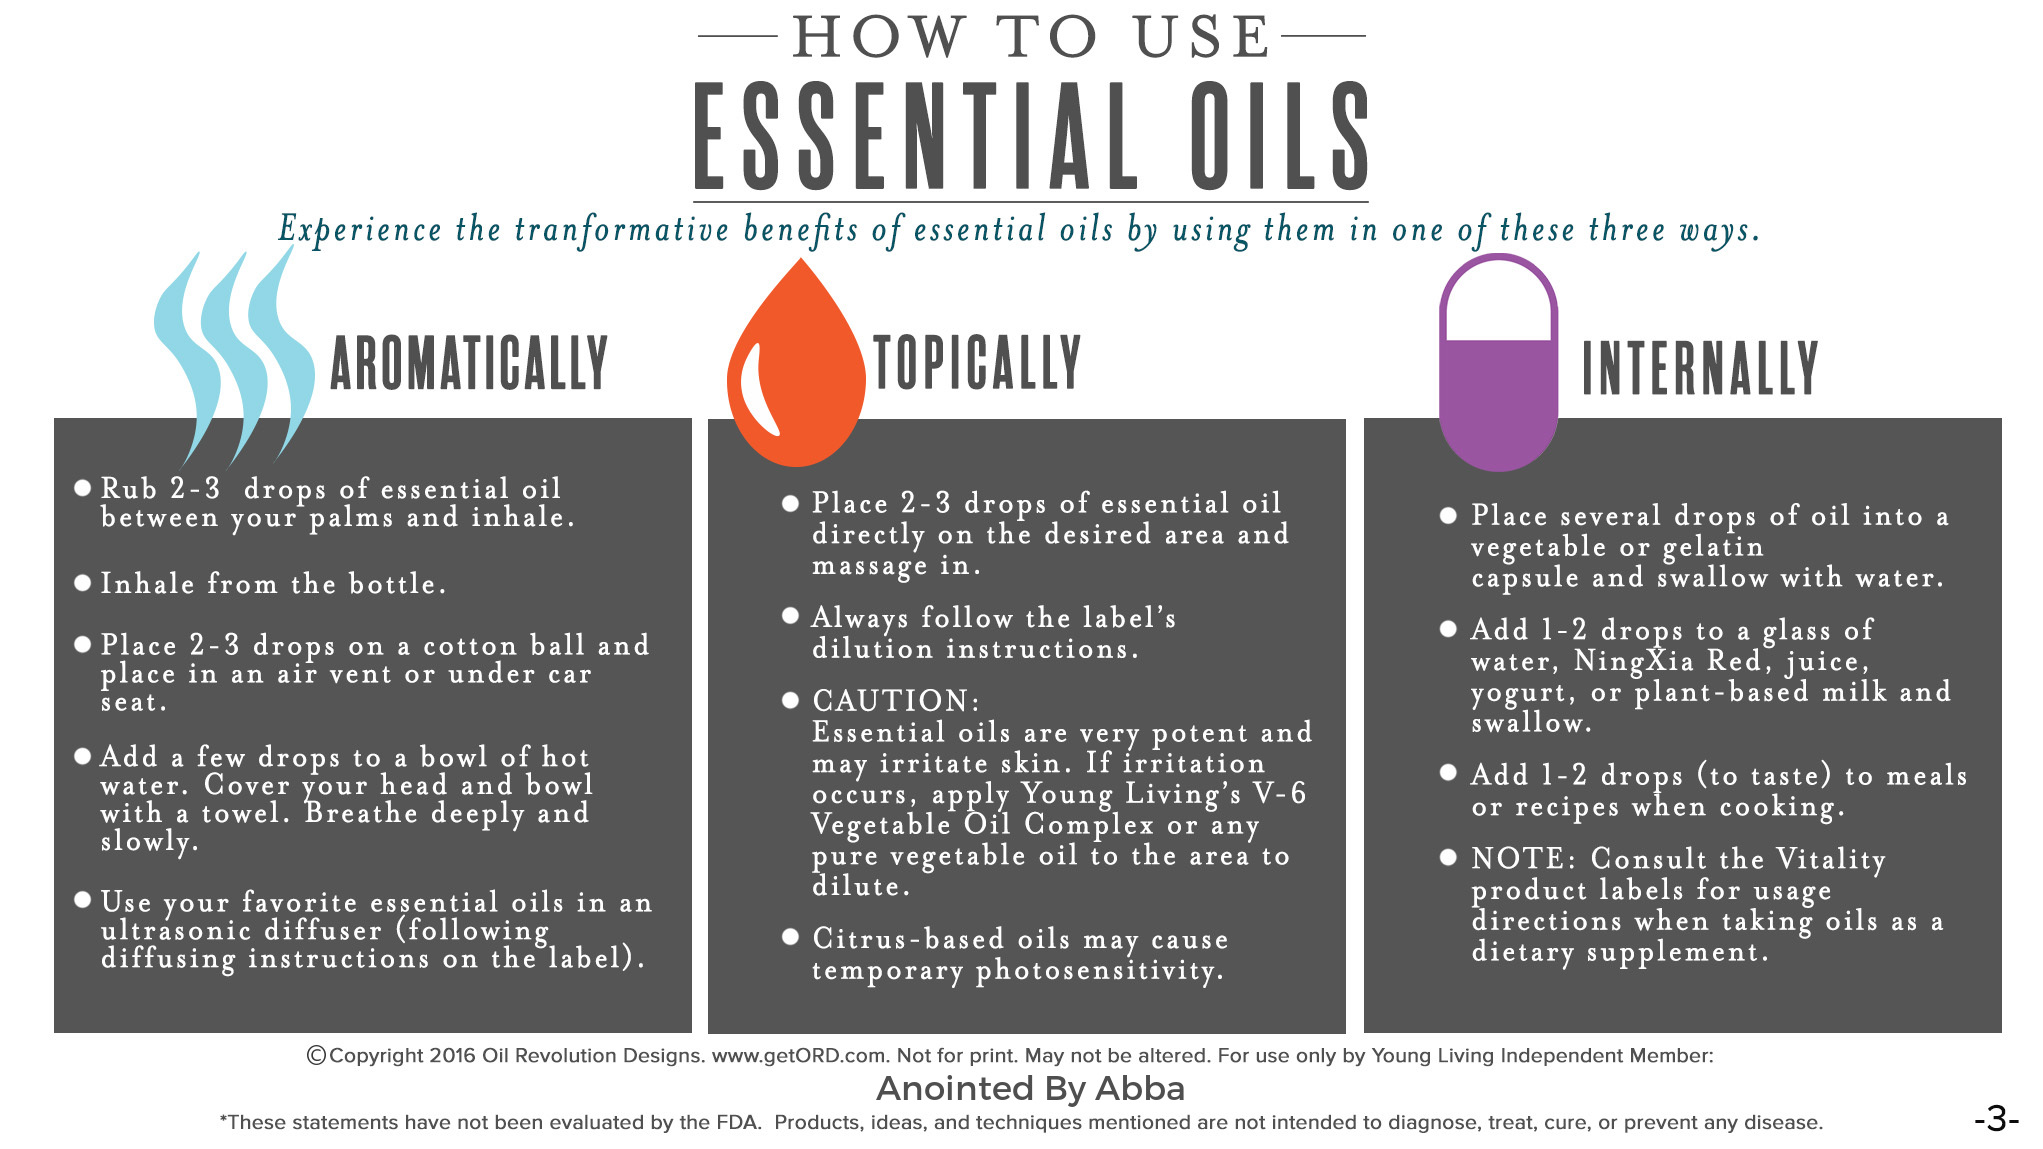 how to use oils mrhsxc